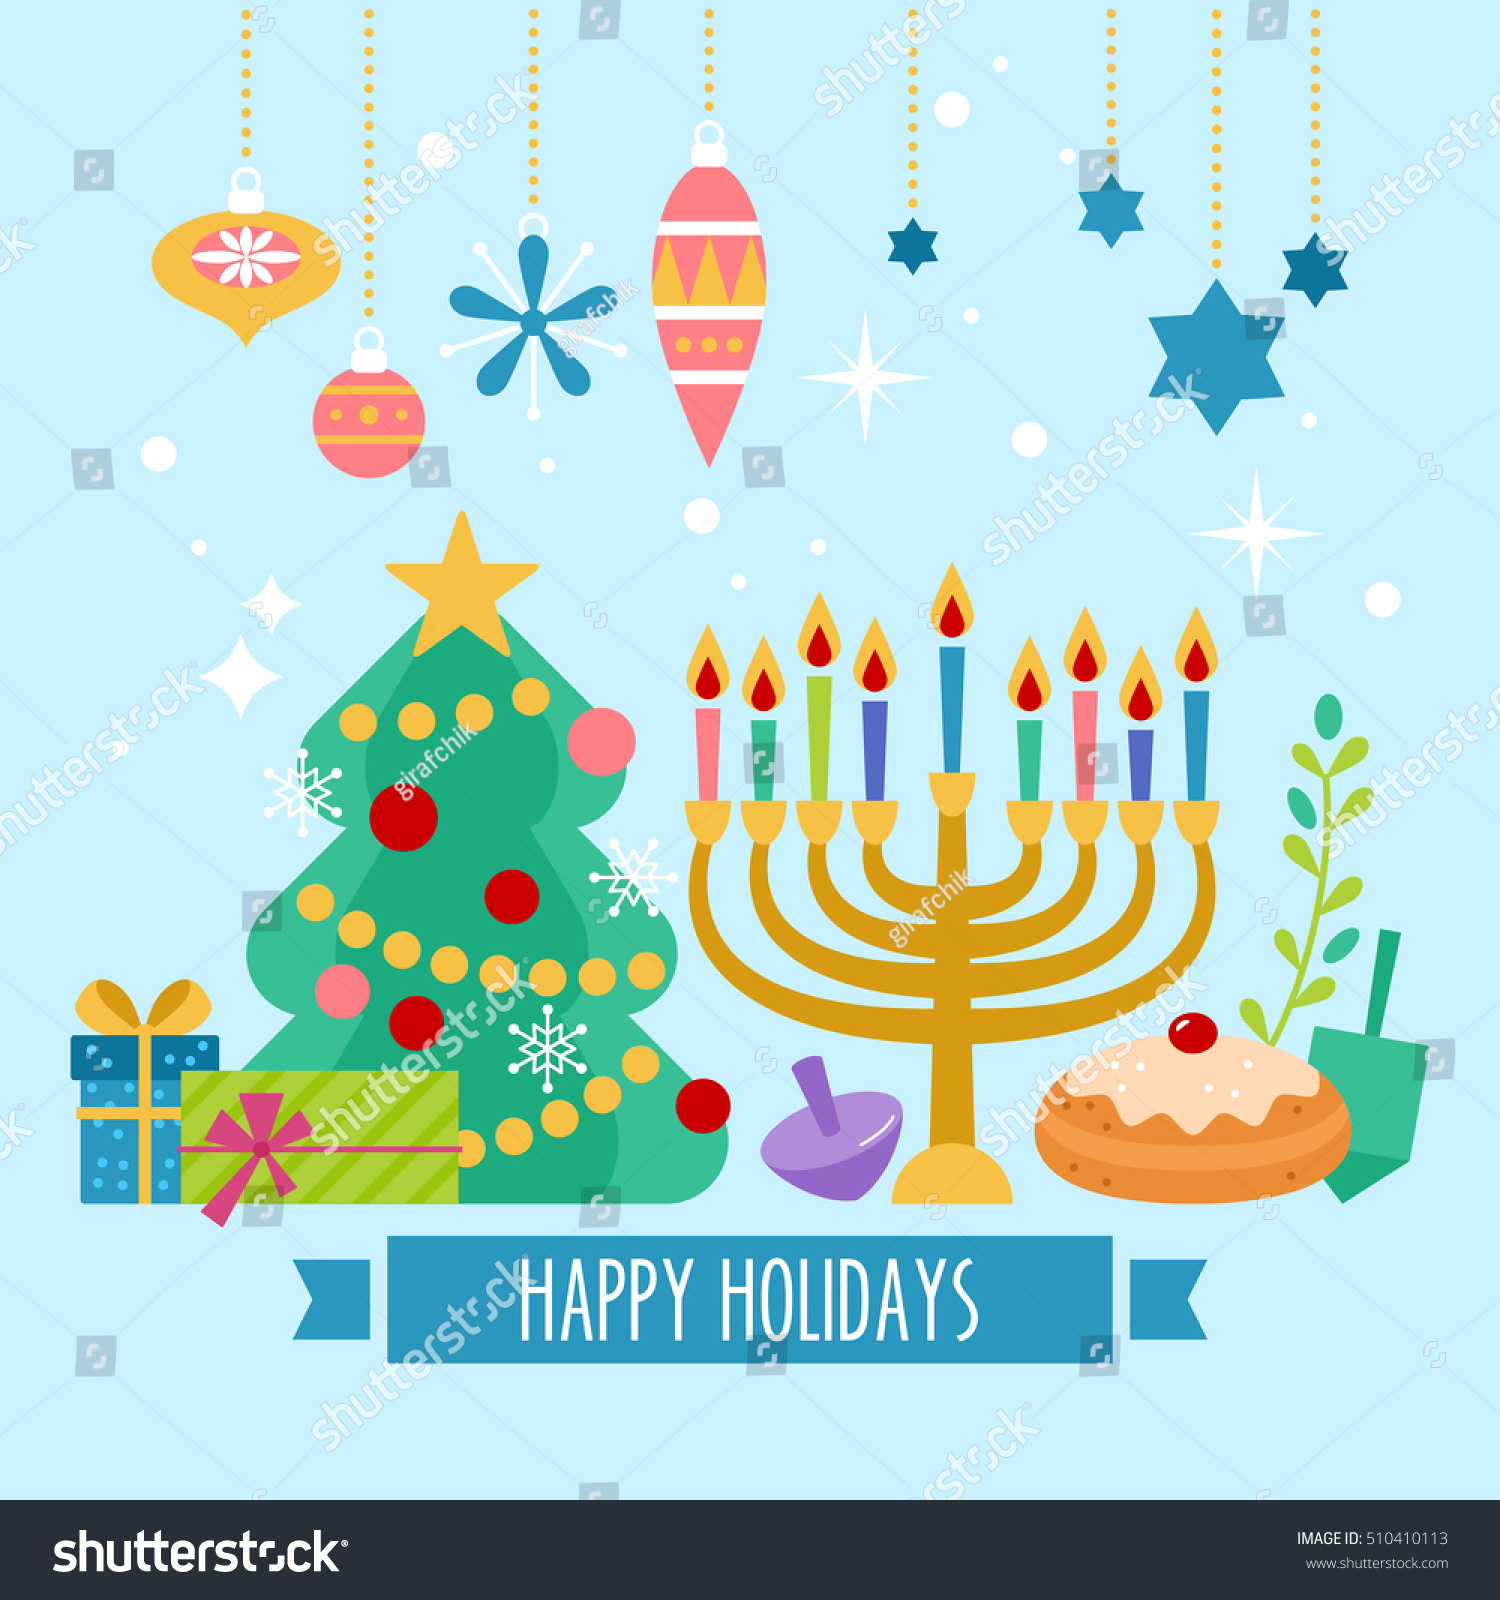 Similar Images Stock Photos Vectors Of Christmas Hanukkah Holiday